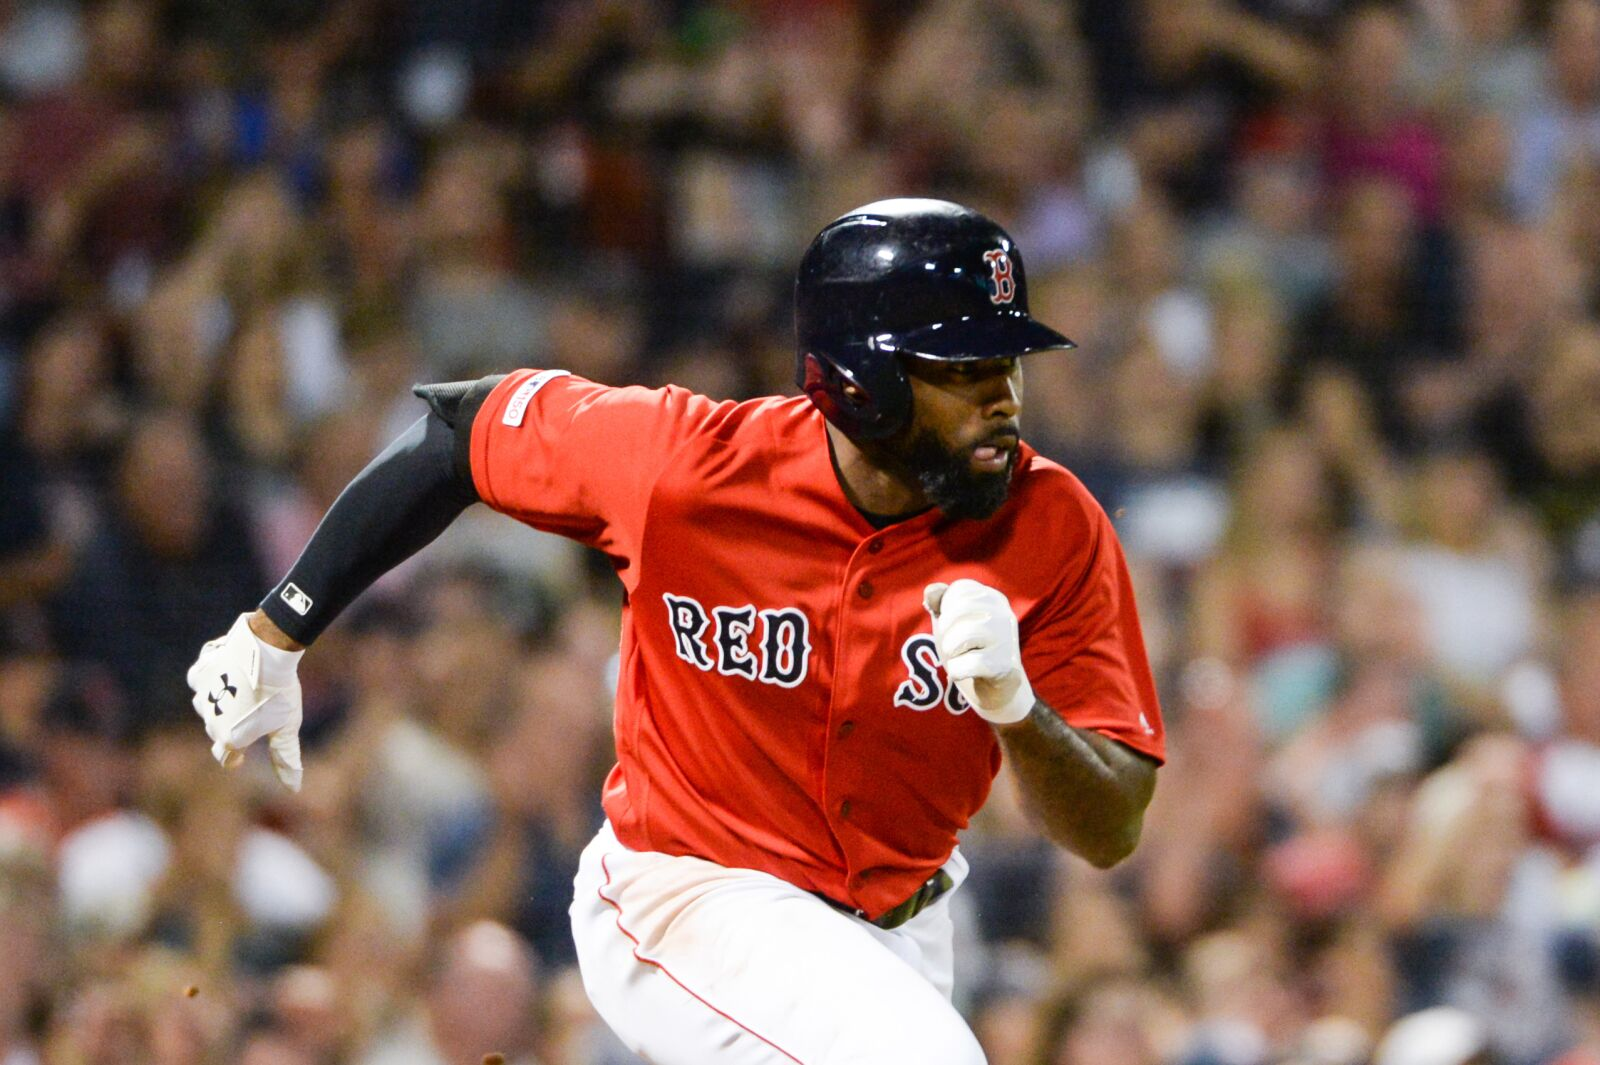 Red Sox are tendering a 2020 contract to center fielder Jackie Bradley Jr.